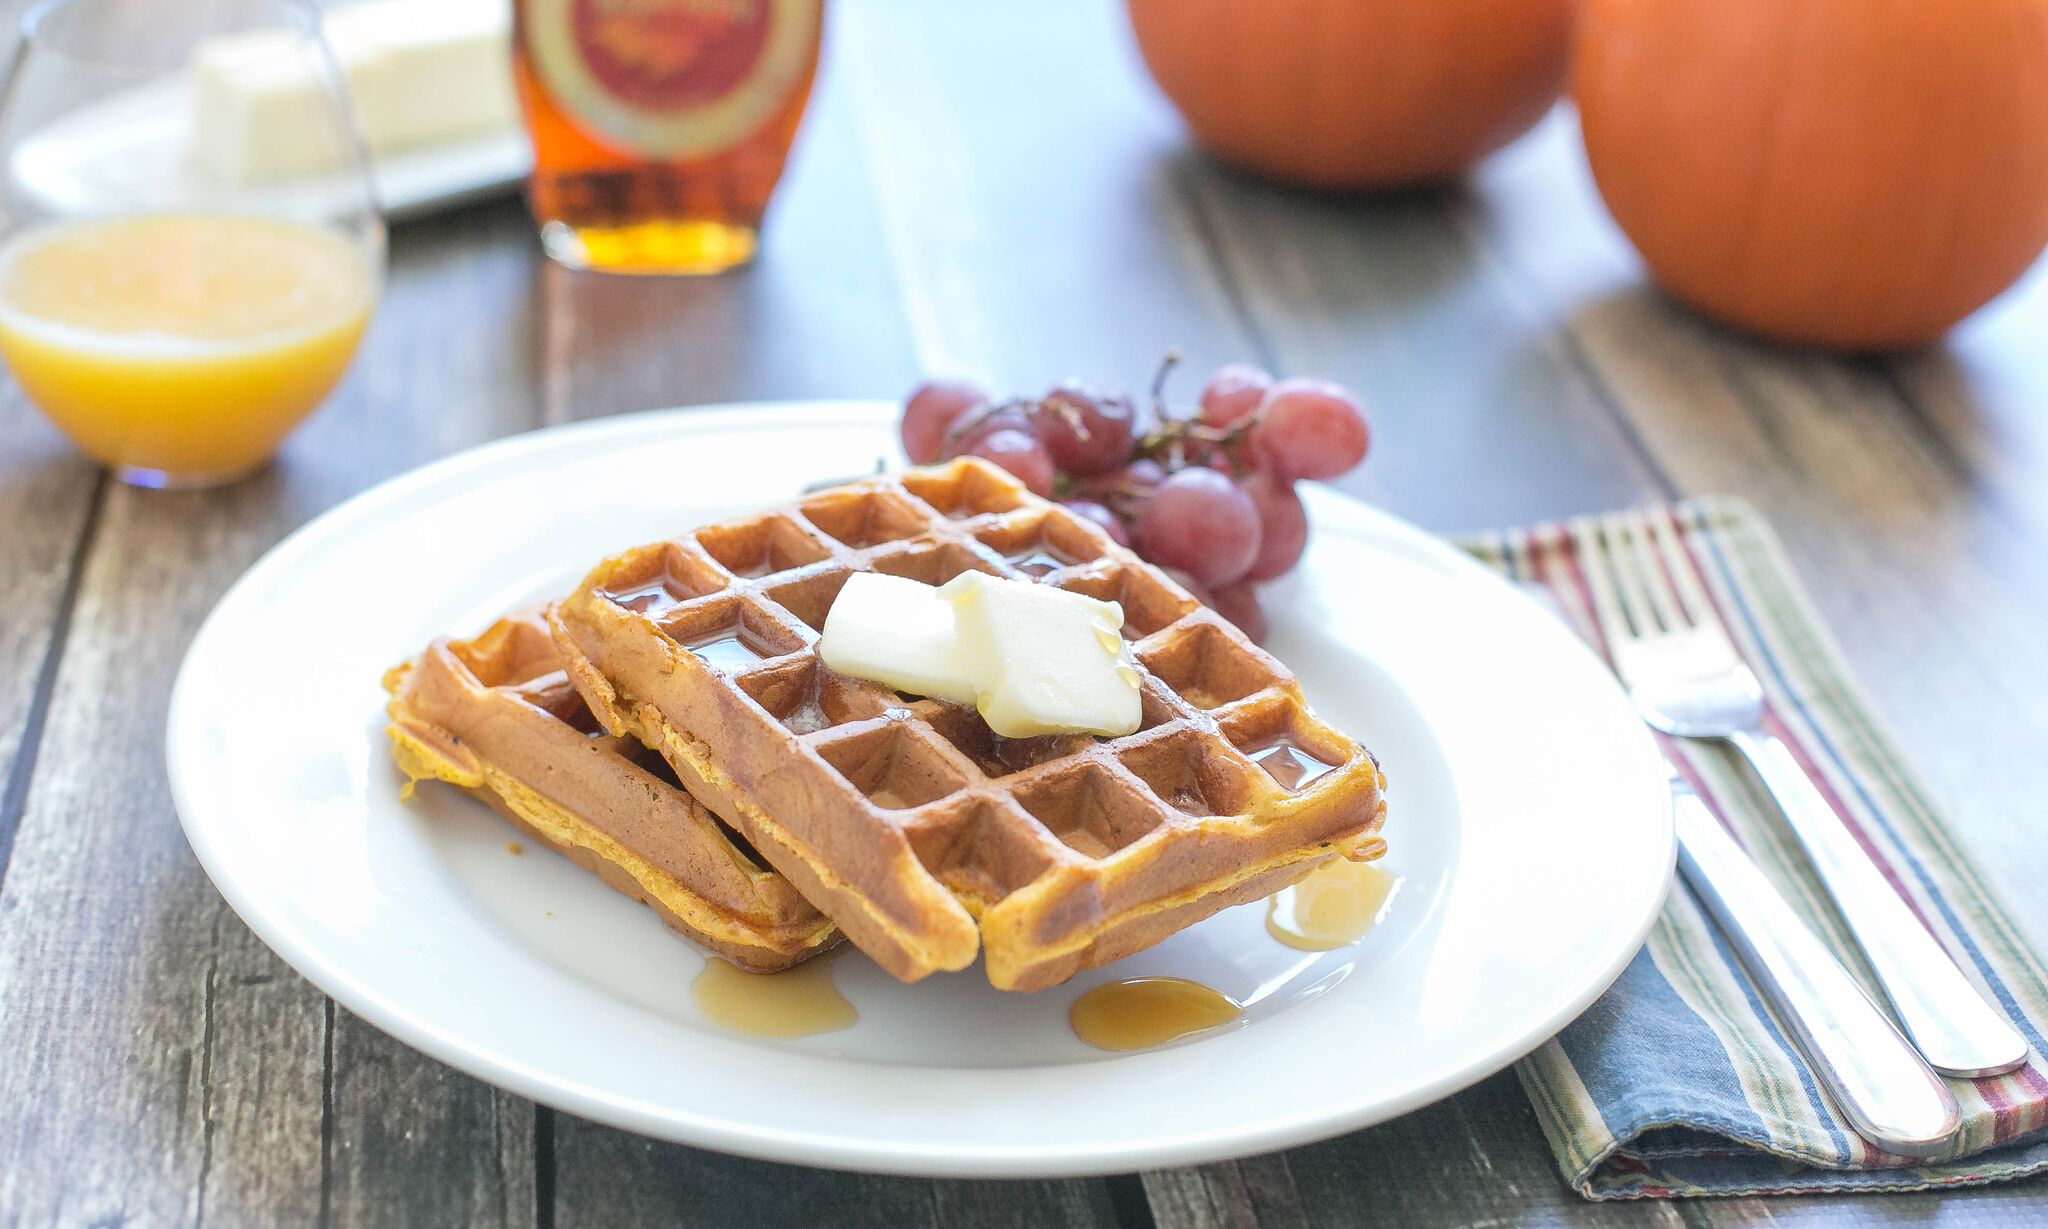 Serve pumpkin waffles with a glass of orange juice and fresh fruit.